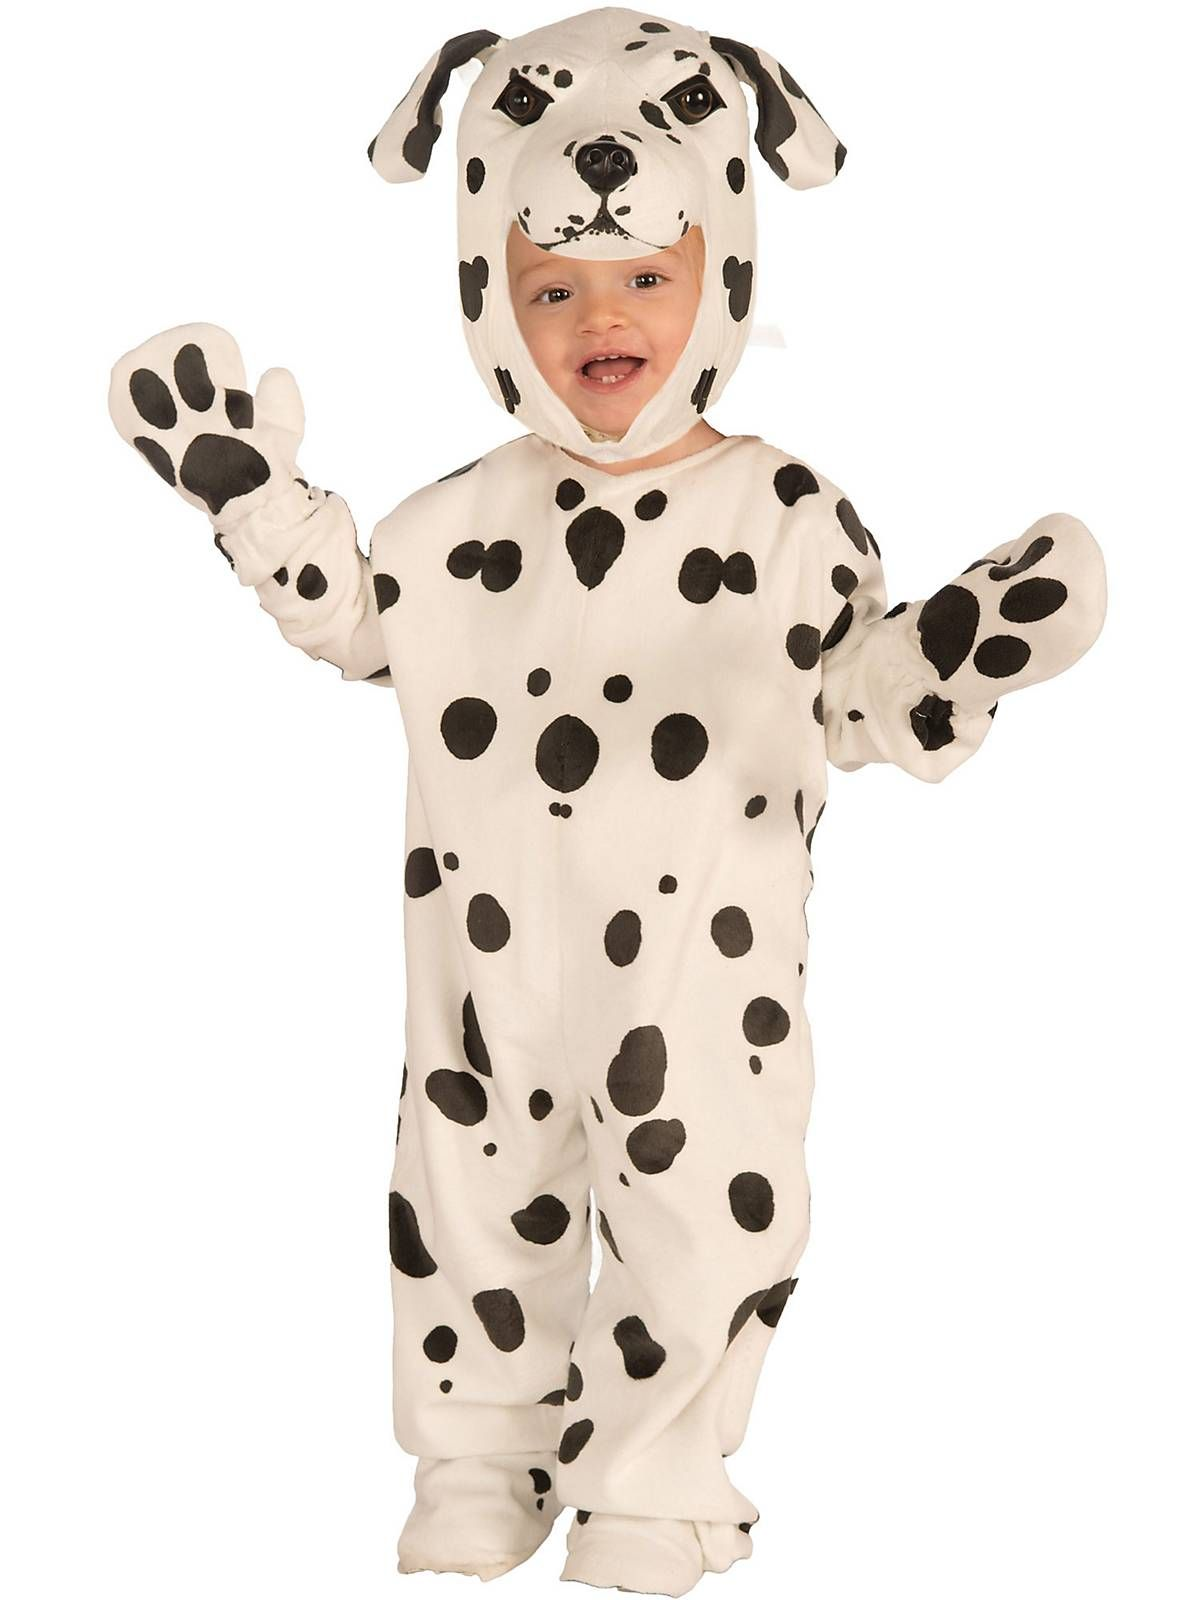 boys plush dalmatian costume wholesale animals costumes for boys